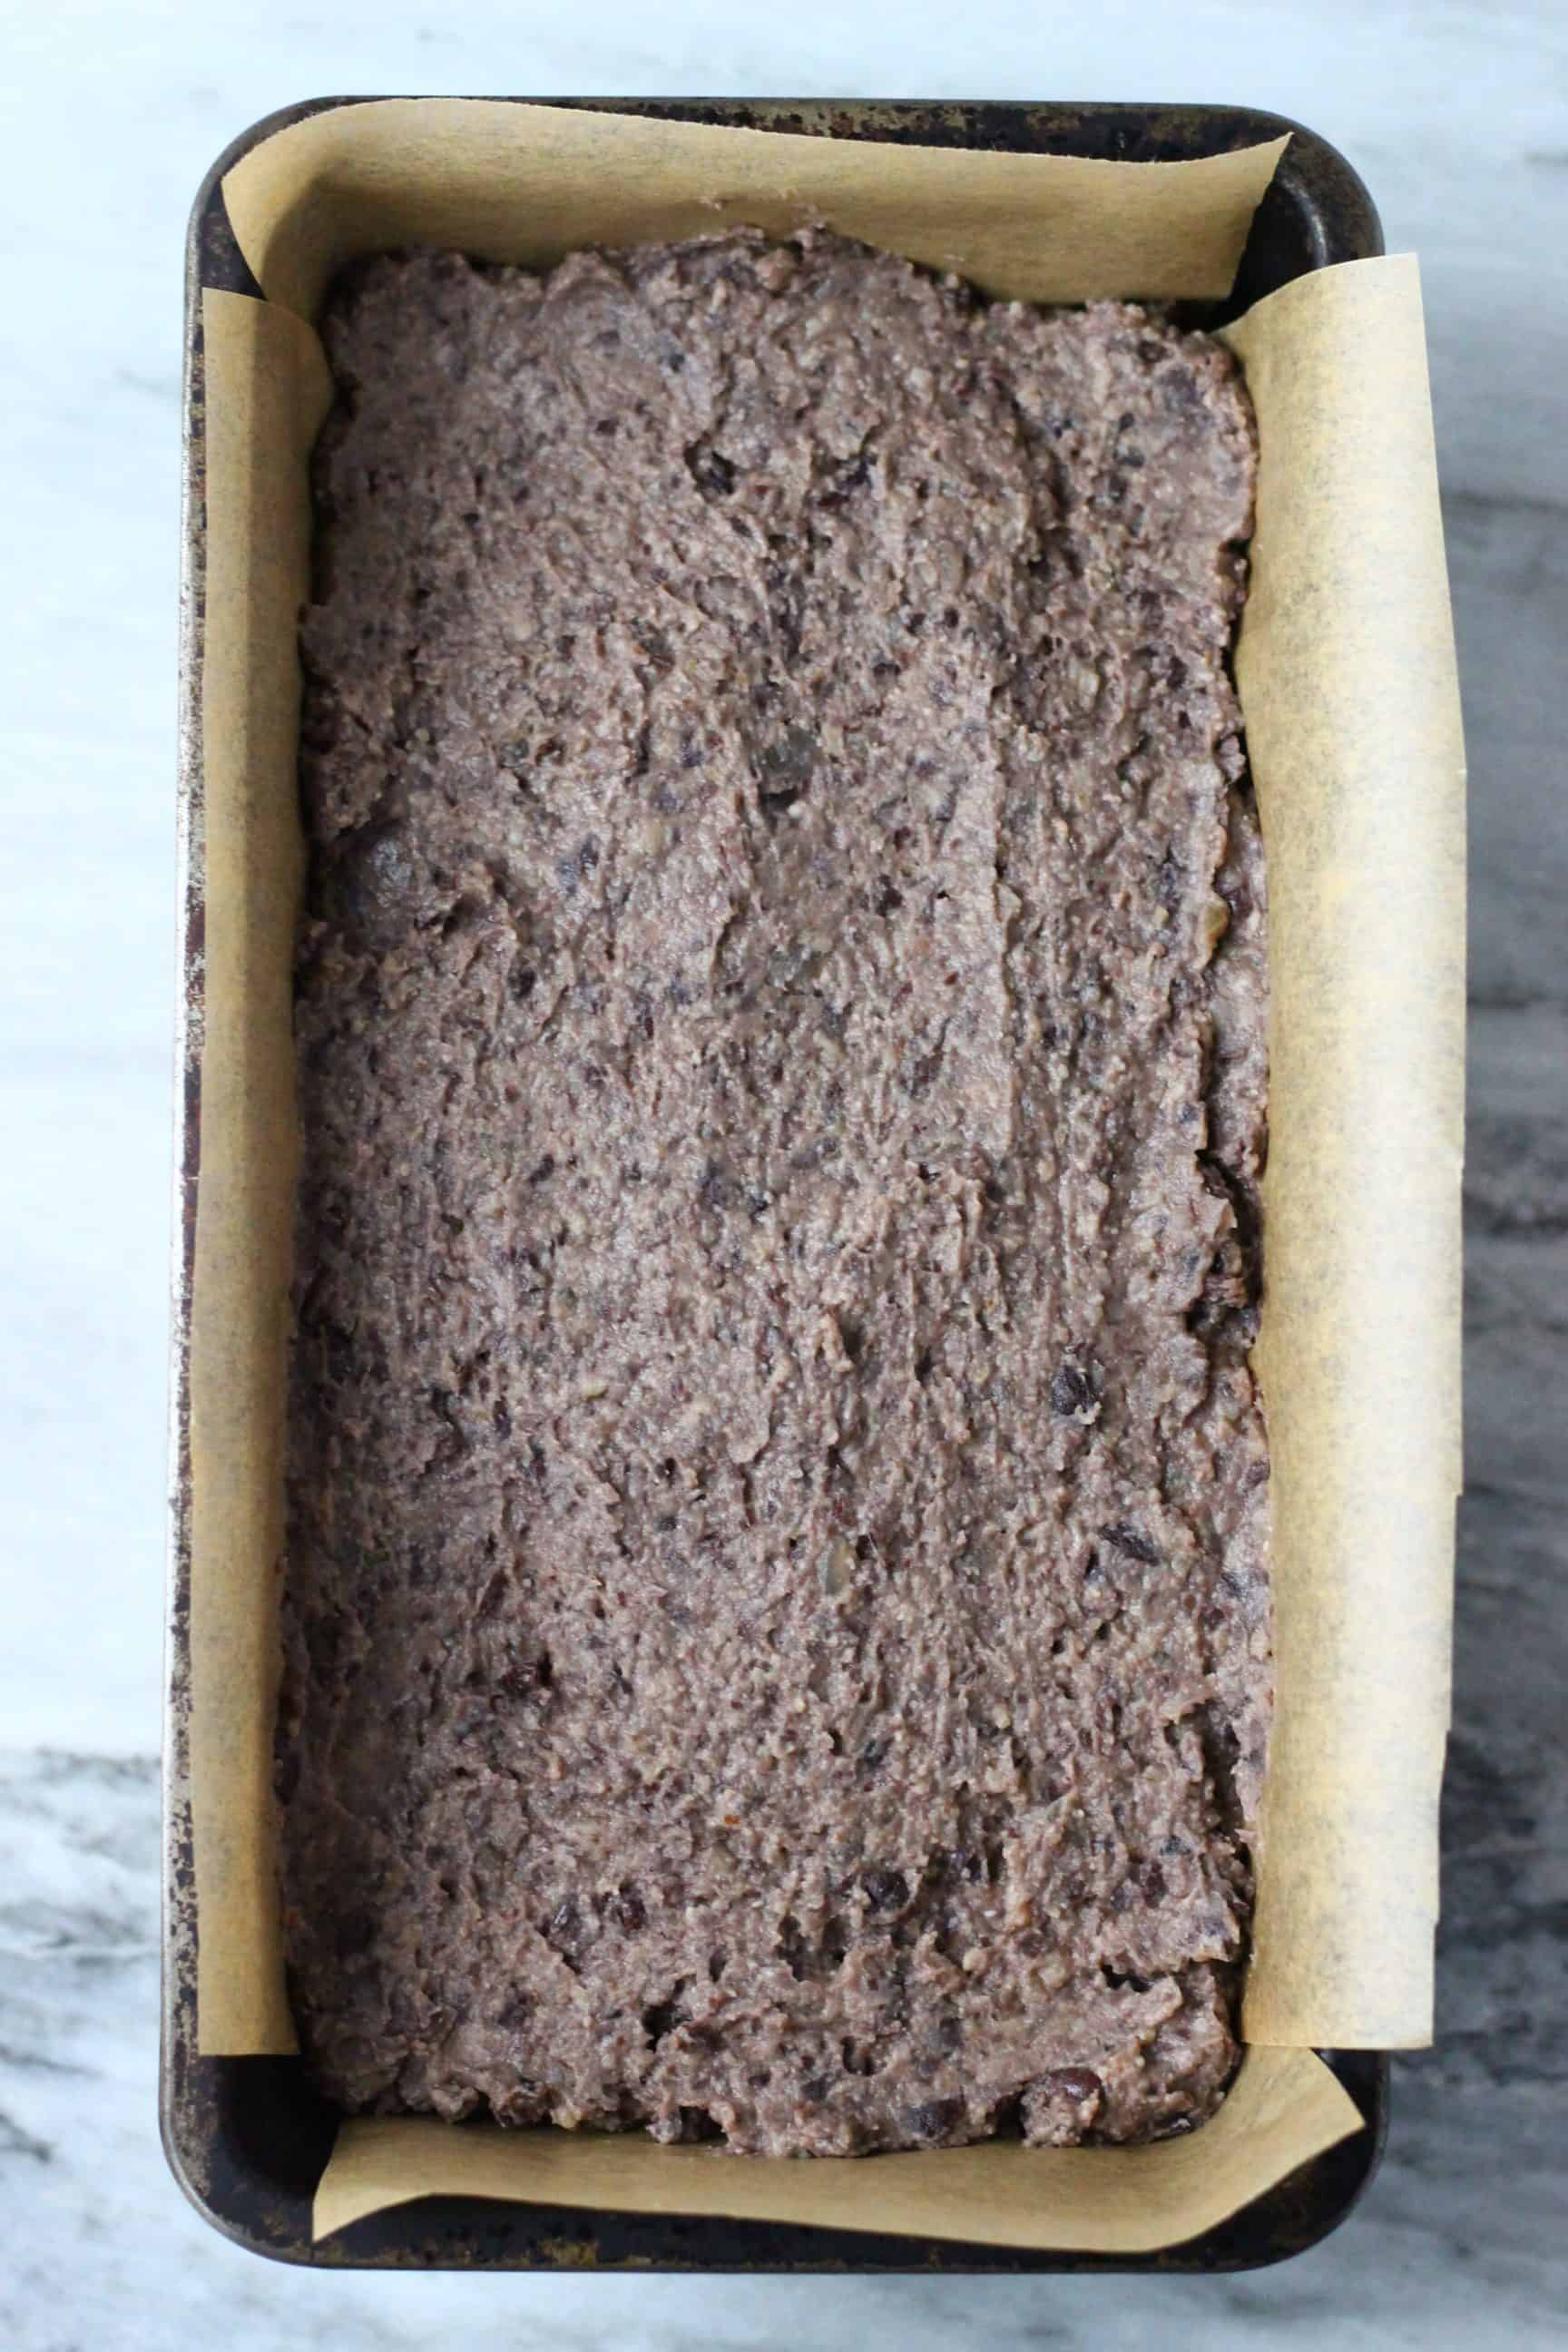 Vegan black bean meatloaf mixture in a loaf tin lined with baking paper